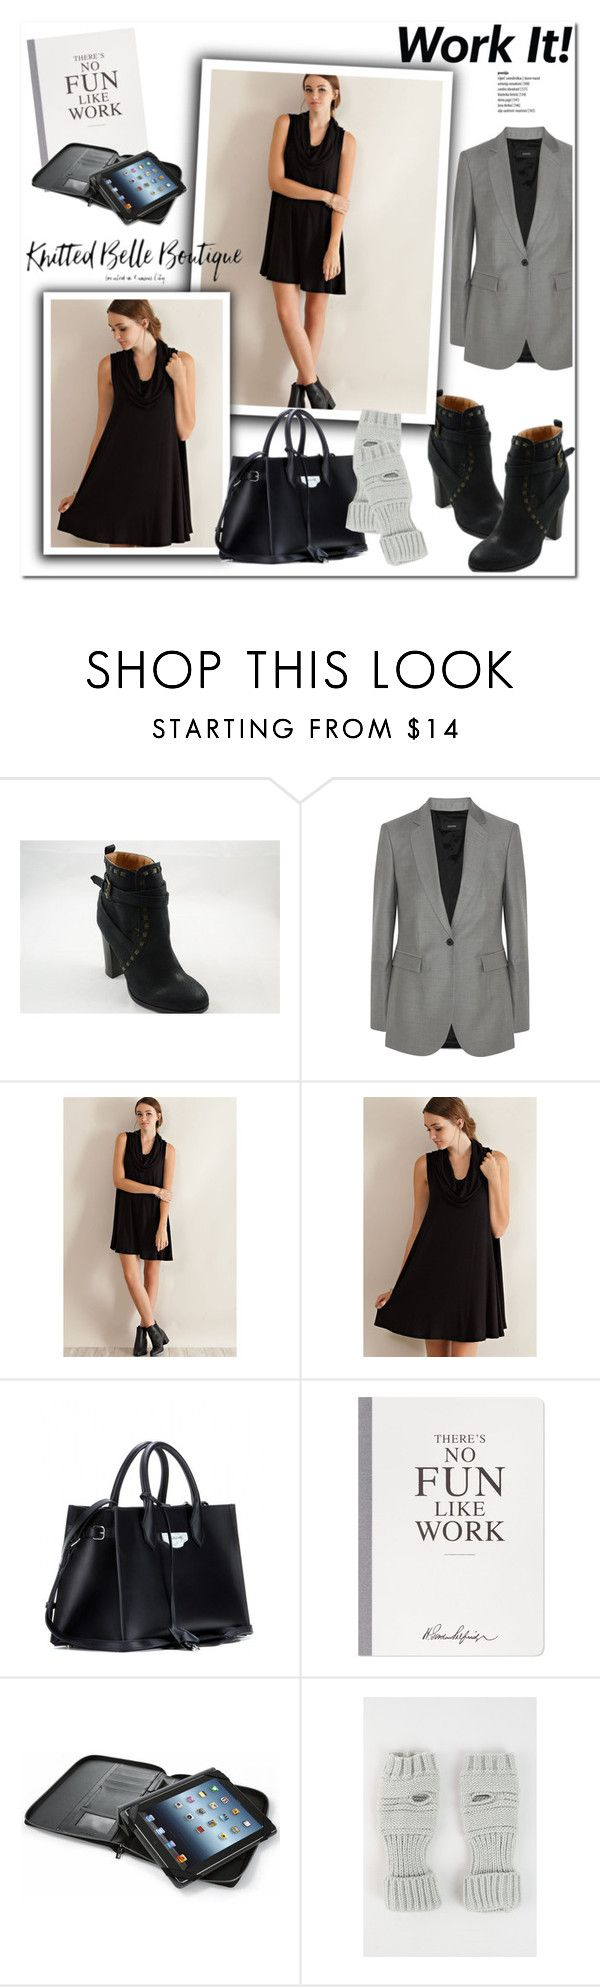 """Work in Style!"" by knittedbelleboutique ❤ liked on Polyvore featuring moda, Joseph, Balenciaga, Selfridges, Folio, WorkWear, CasualChic e knittedbelleboutique"